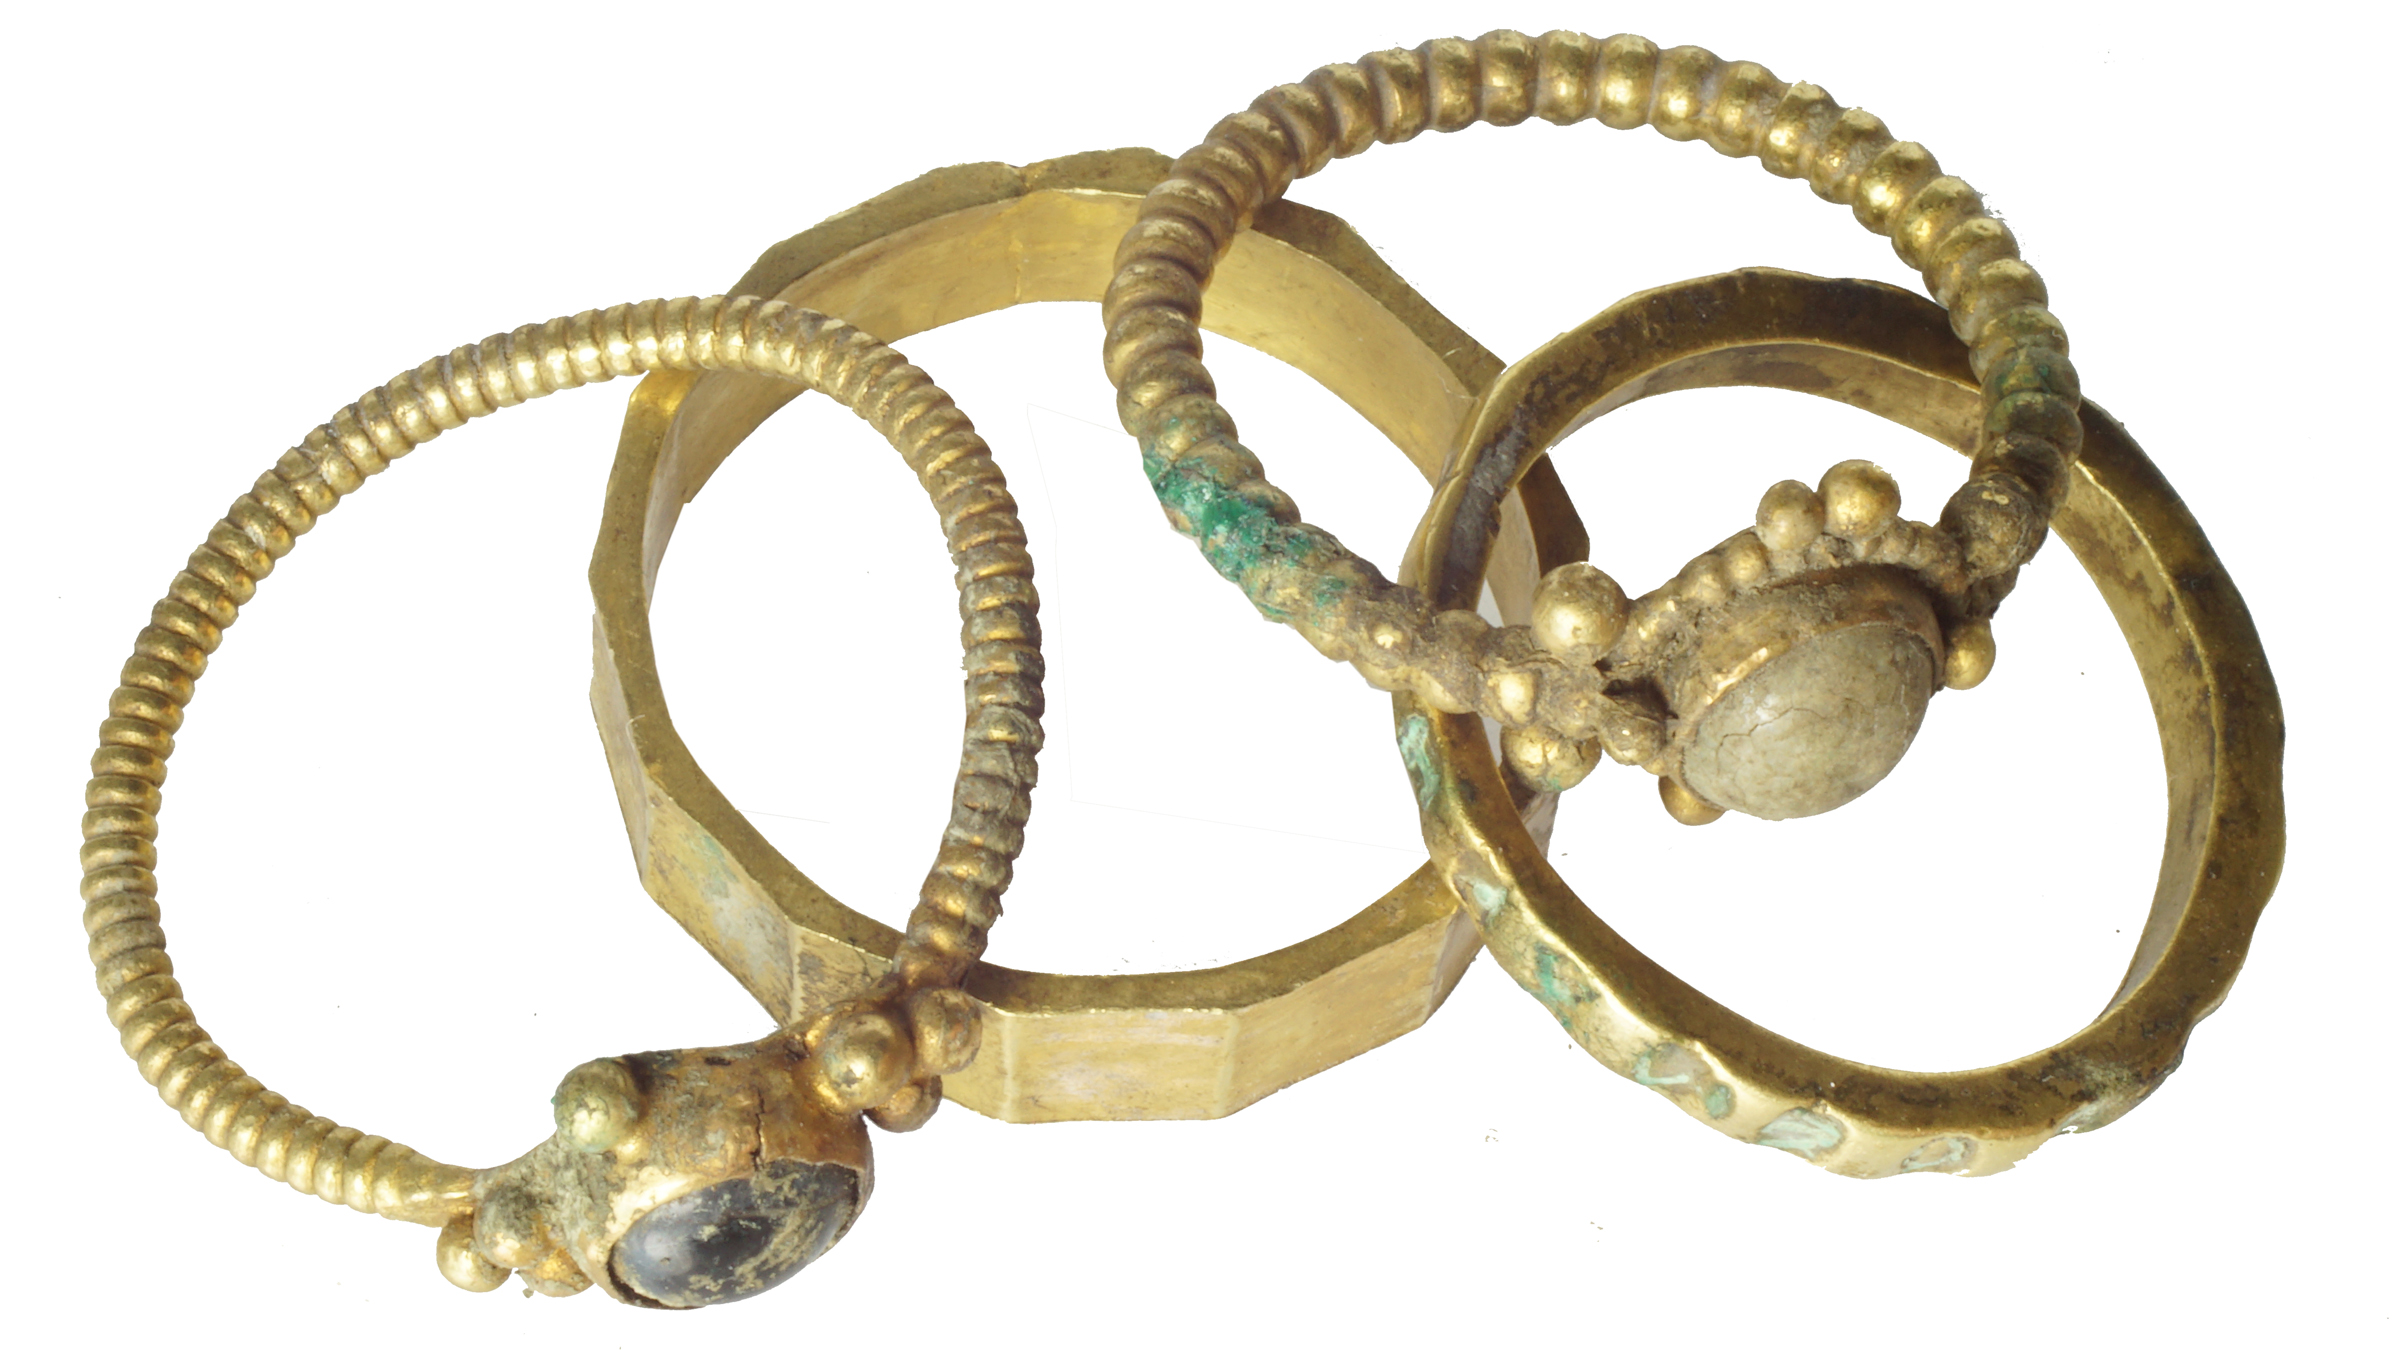 The four gold rings found in the medieval hoard.